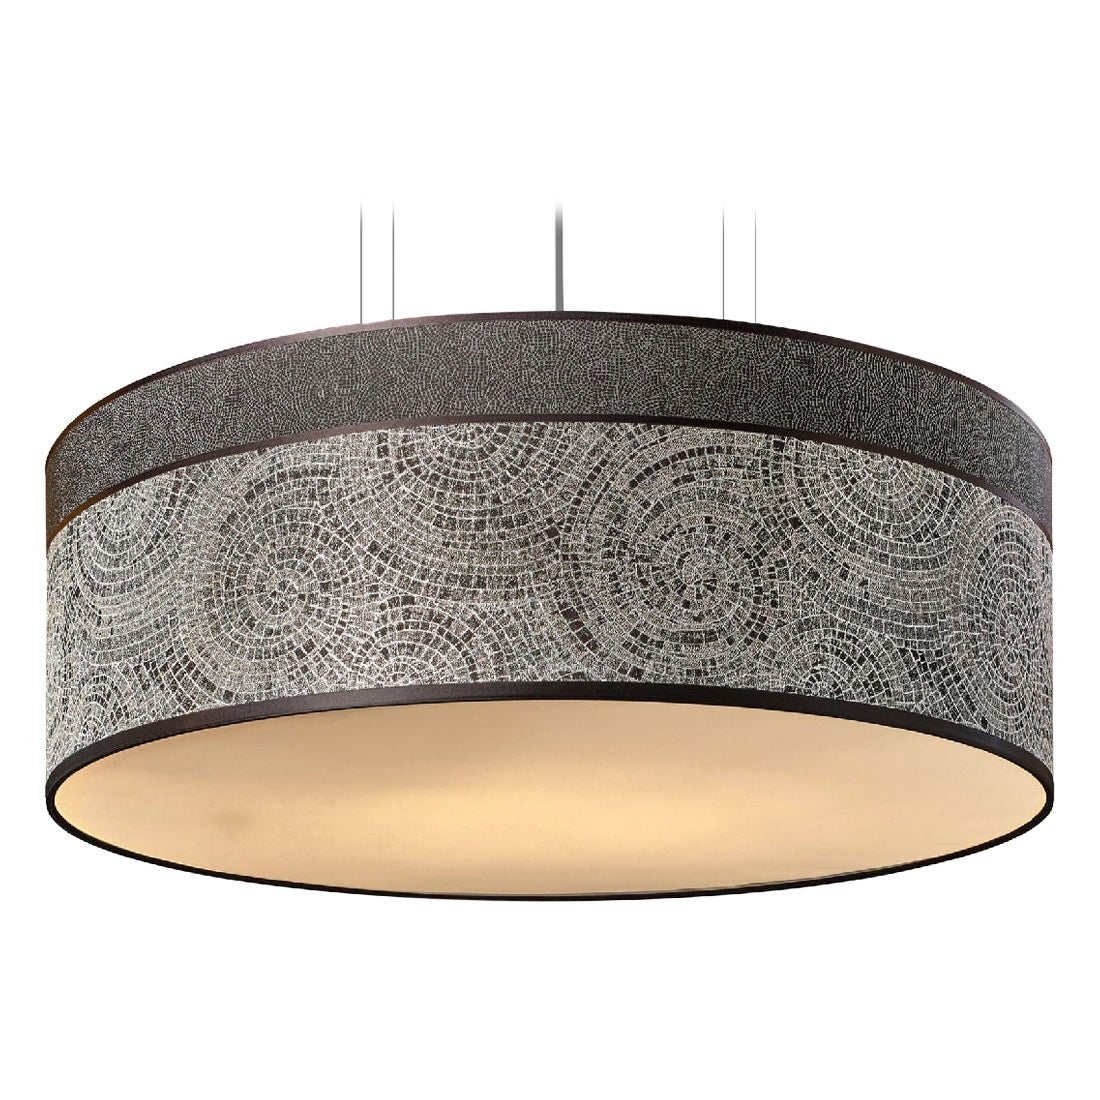 Stylish Ceiling Lamp Lampshade in Fabric Customizable